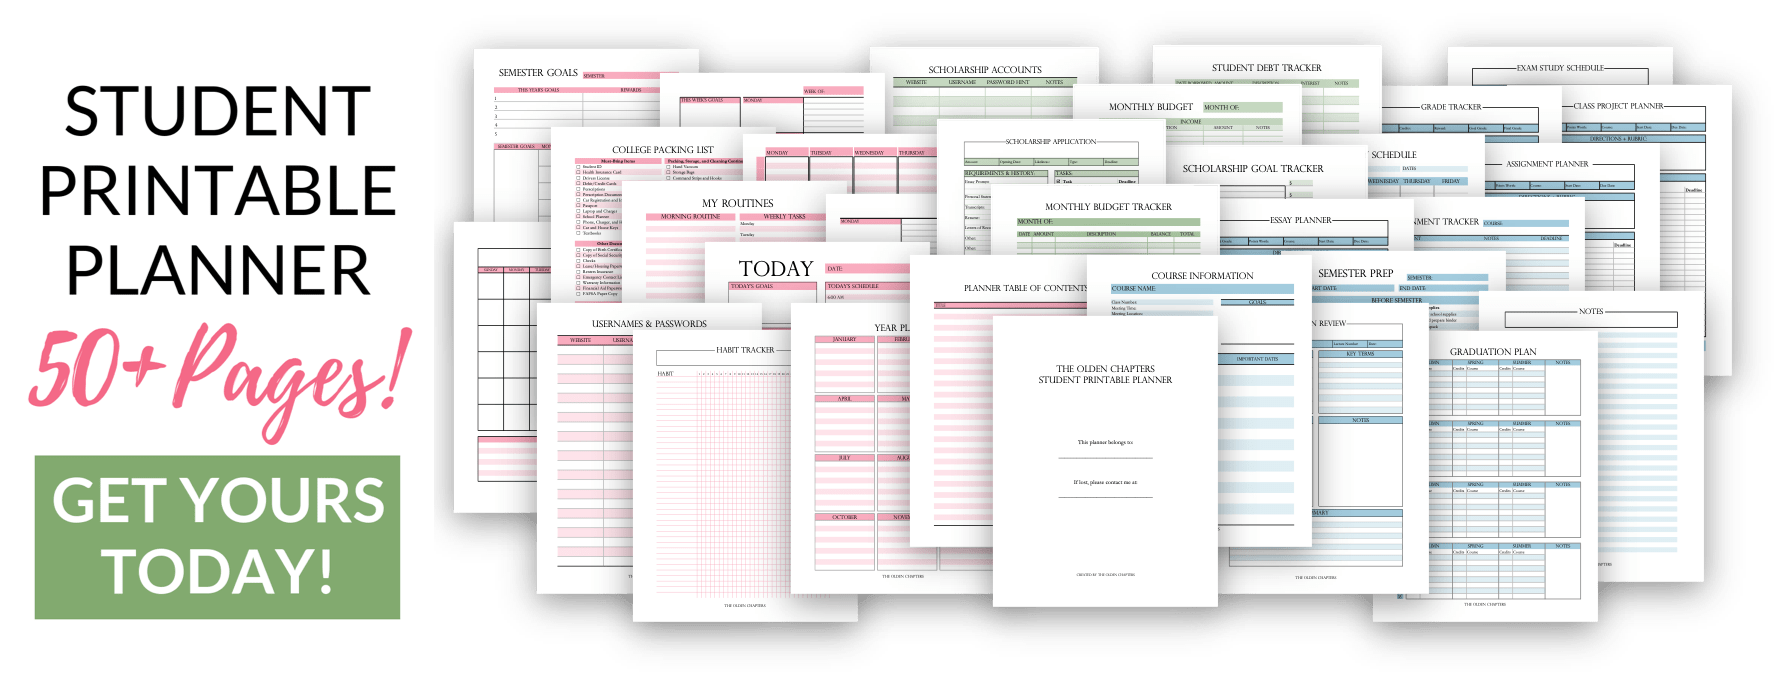 This student printable planner is perfect for students in college, high school, middle, elementary and home school. Includes hundreds of pages and templates that will help your time management, goal setting, personal development, organization, and more! Includes layouts for daily, weekly, and monthly planning as well as calendars, cleaning schedules, shopping lists, meal planning and everything in between to organize your life. Read now to learn about the perfect student planner today! #college